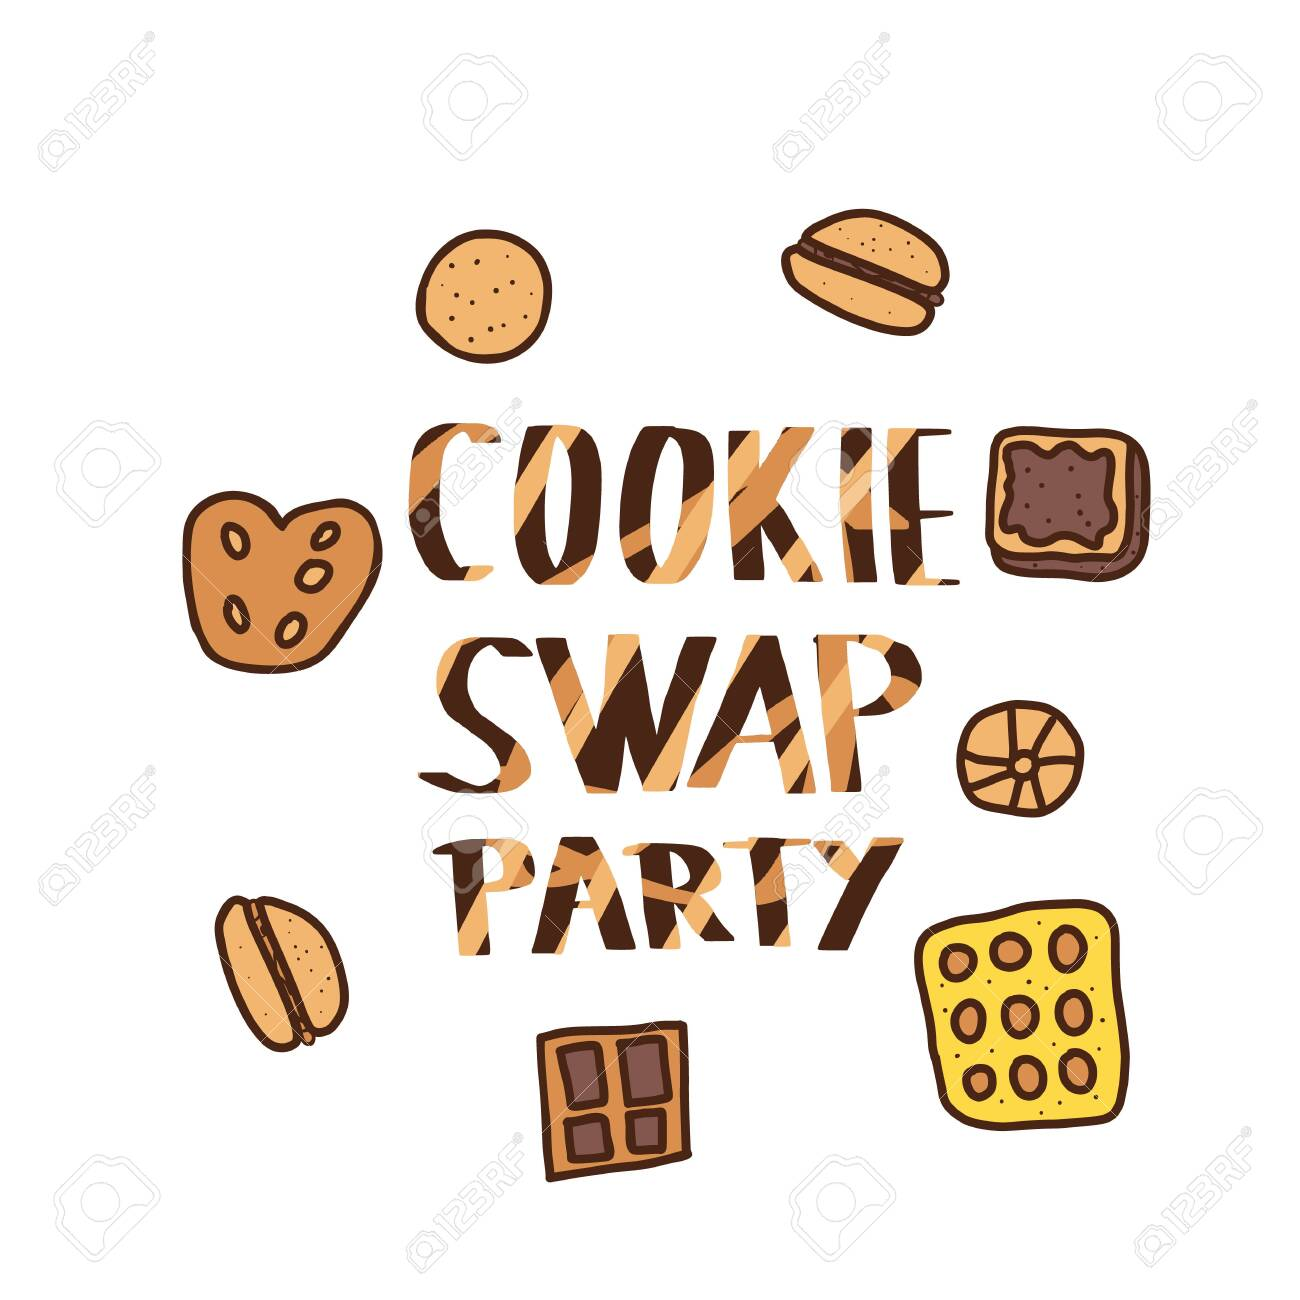 Cookie Swap Party Concept With Quote And Pastry Hand Lettering